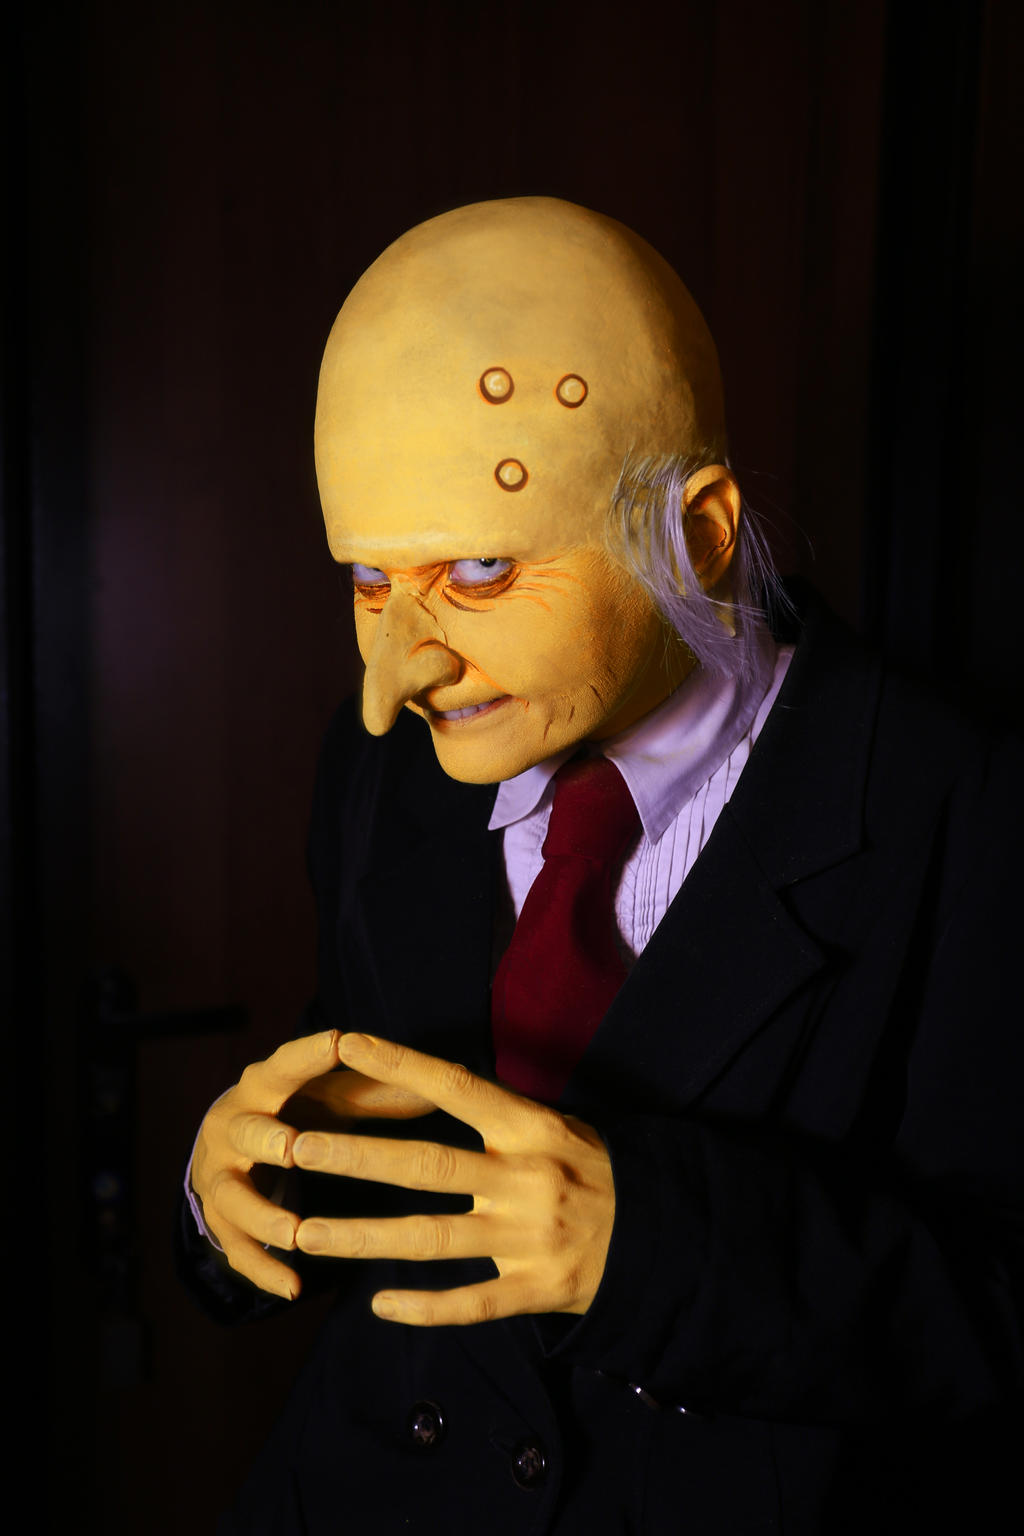 Mr. Burns - The Simpsons